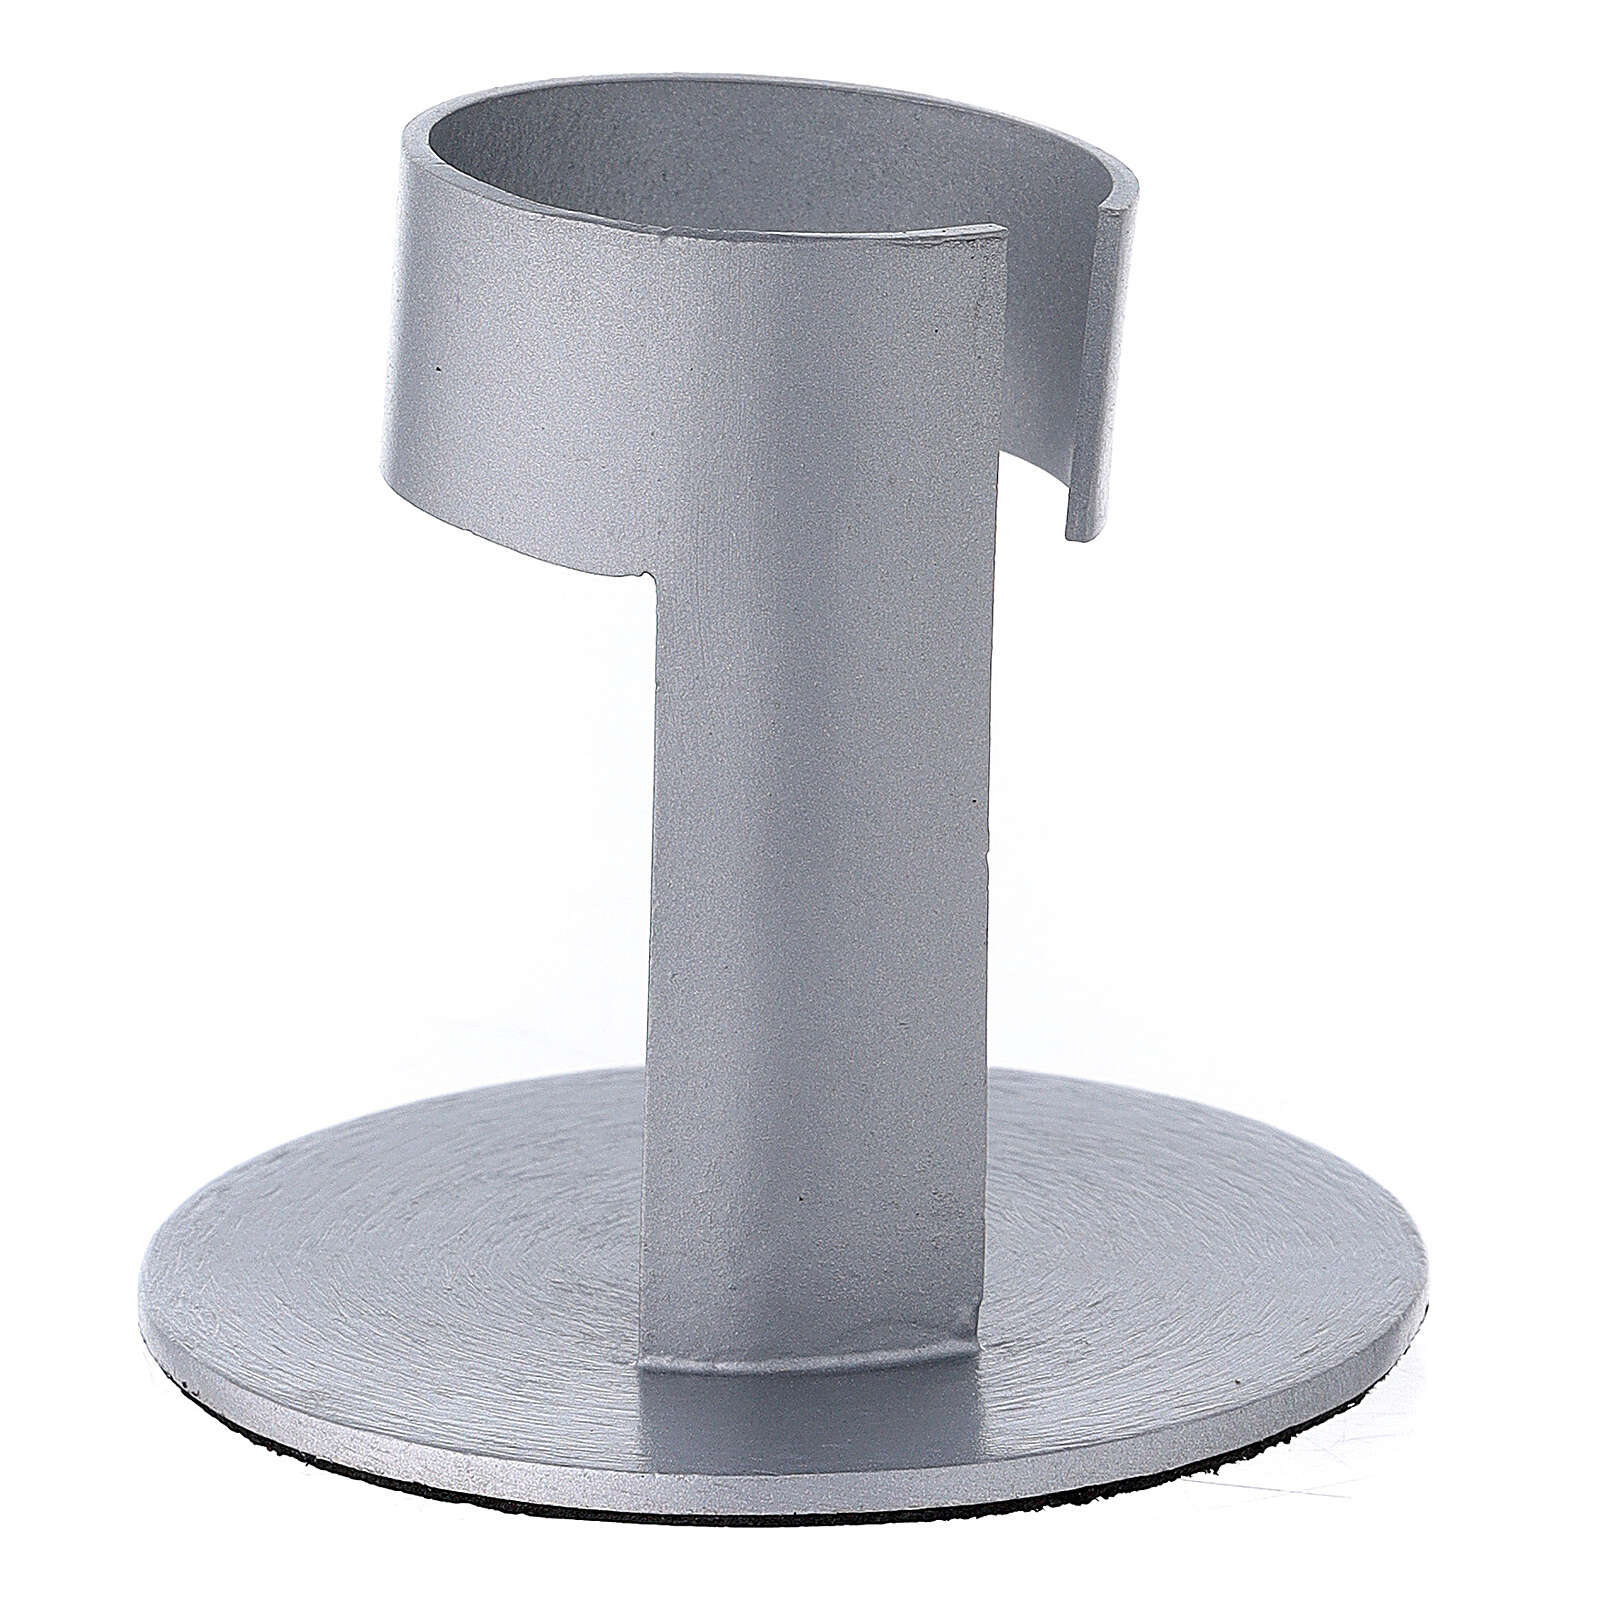 Brushed aluminium candle holder with high socket 1 1/2 in 3